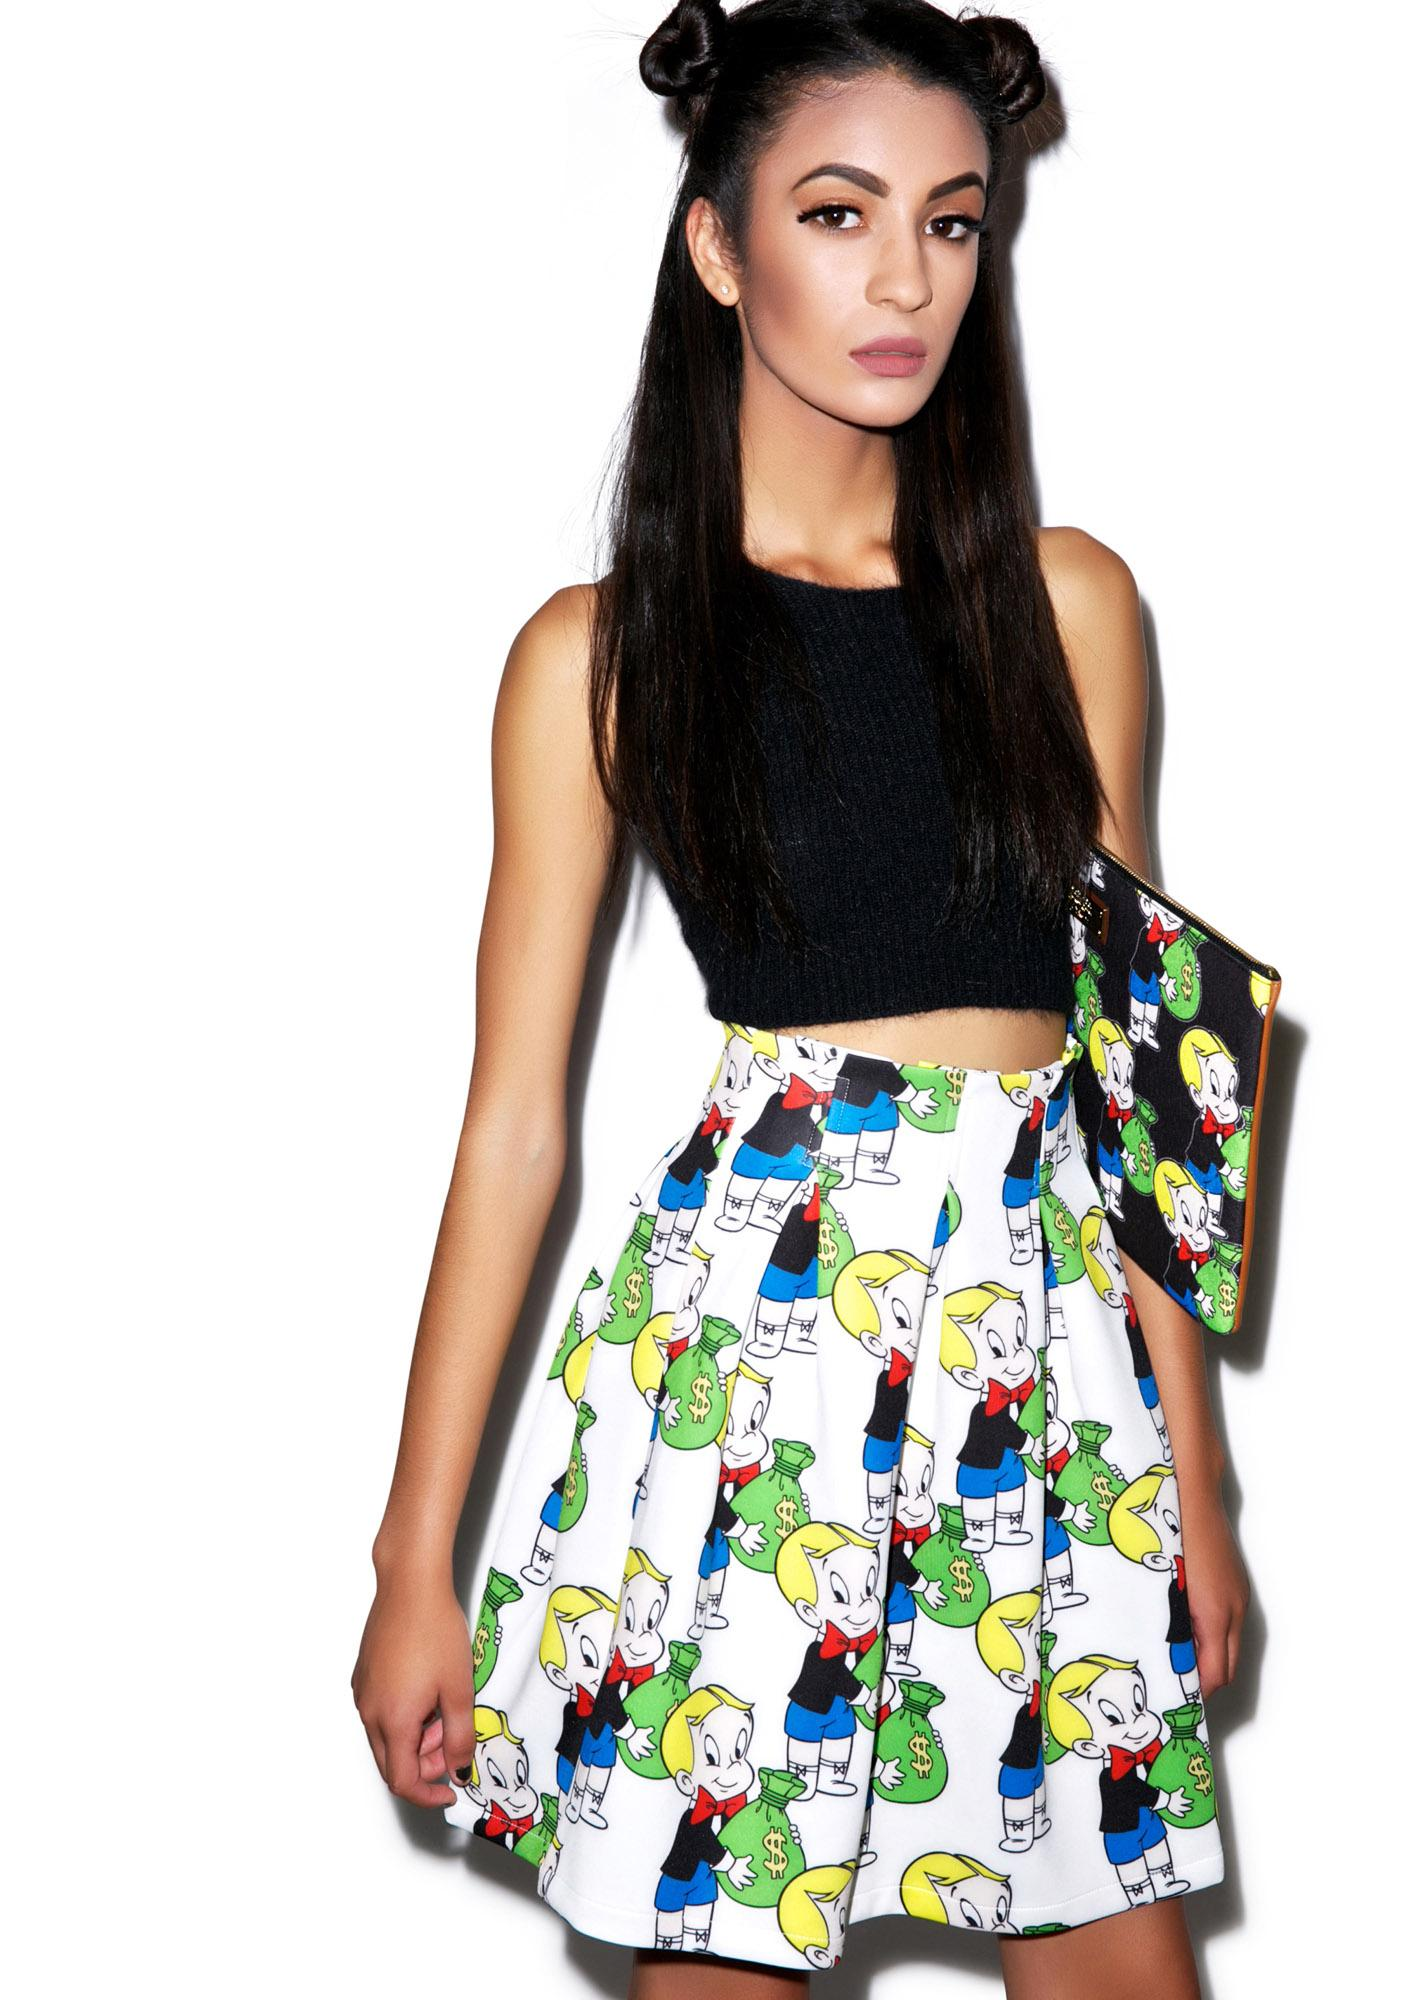 Joyrich Richie Rich Skirt